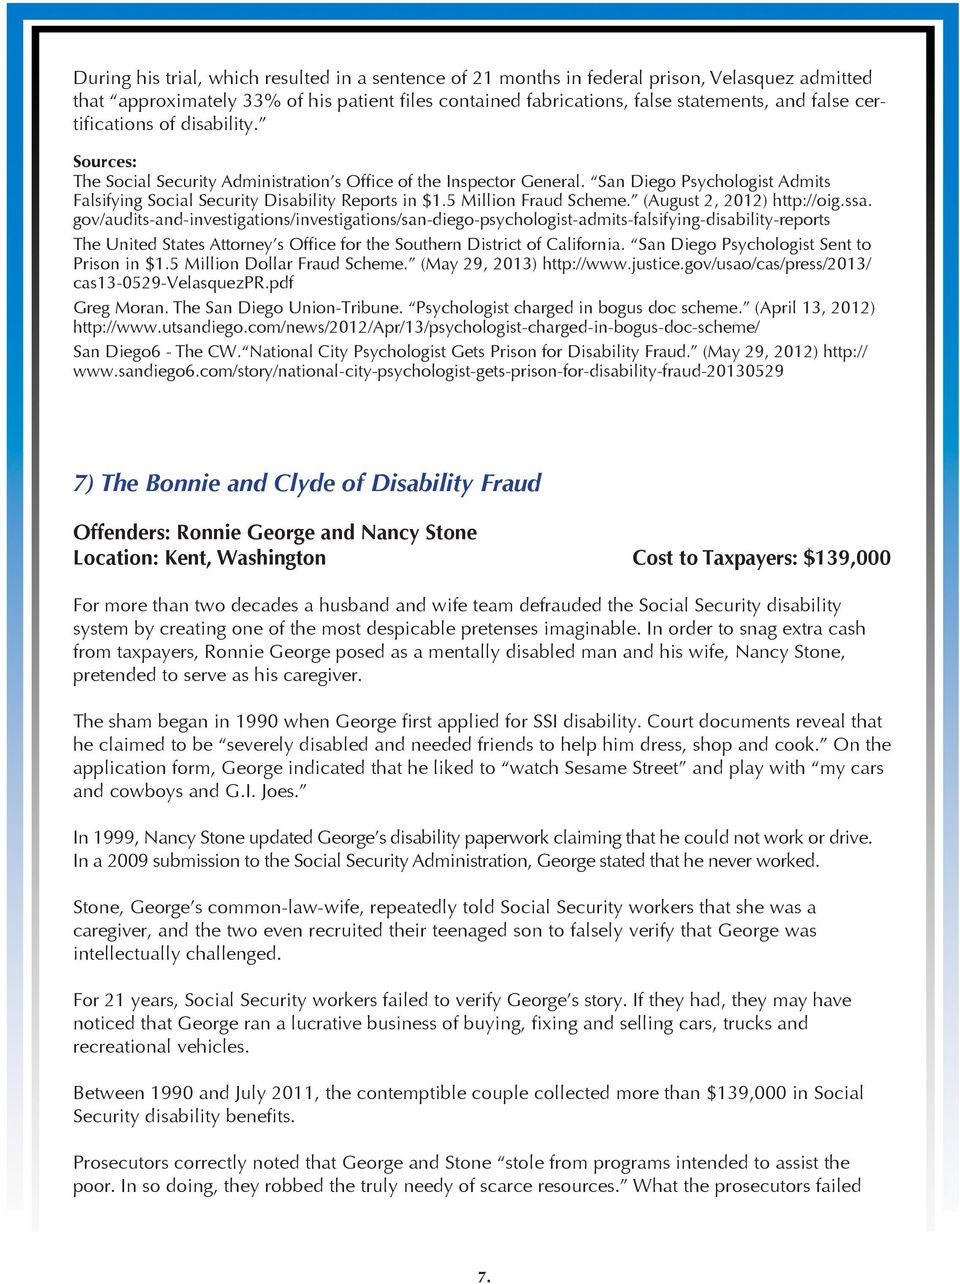 5 Million Fraud Scheme. (August 2, 2012) http://oig.ssa.